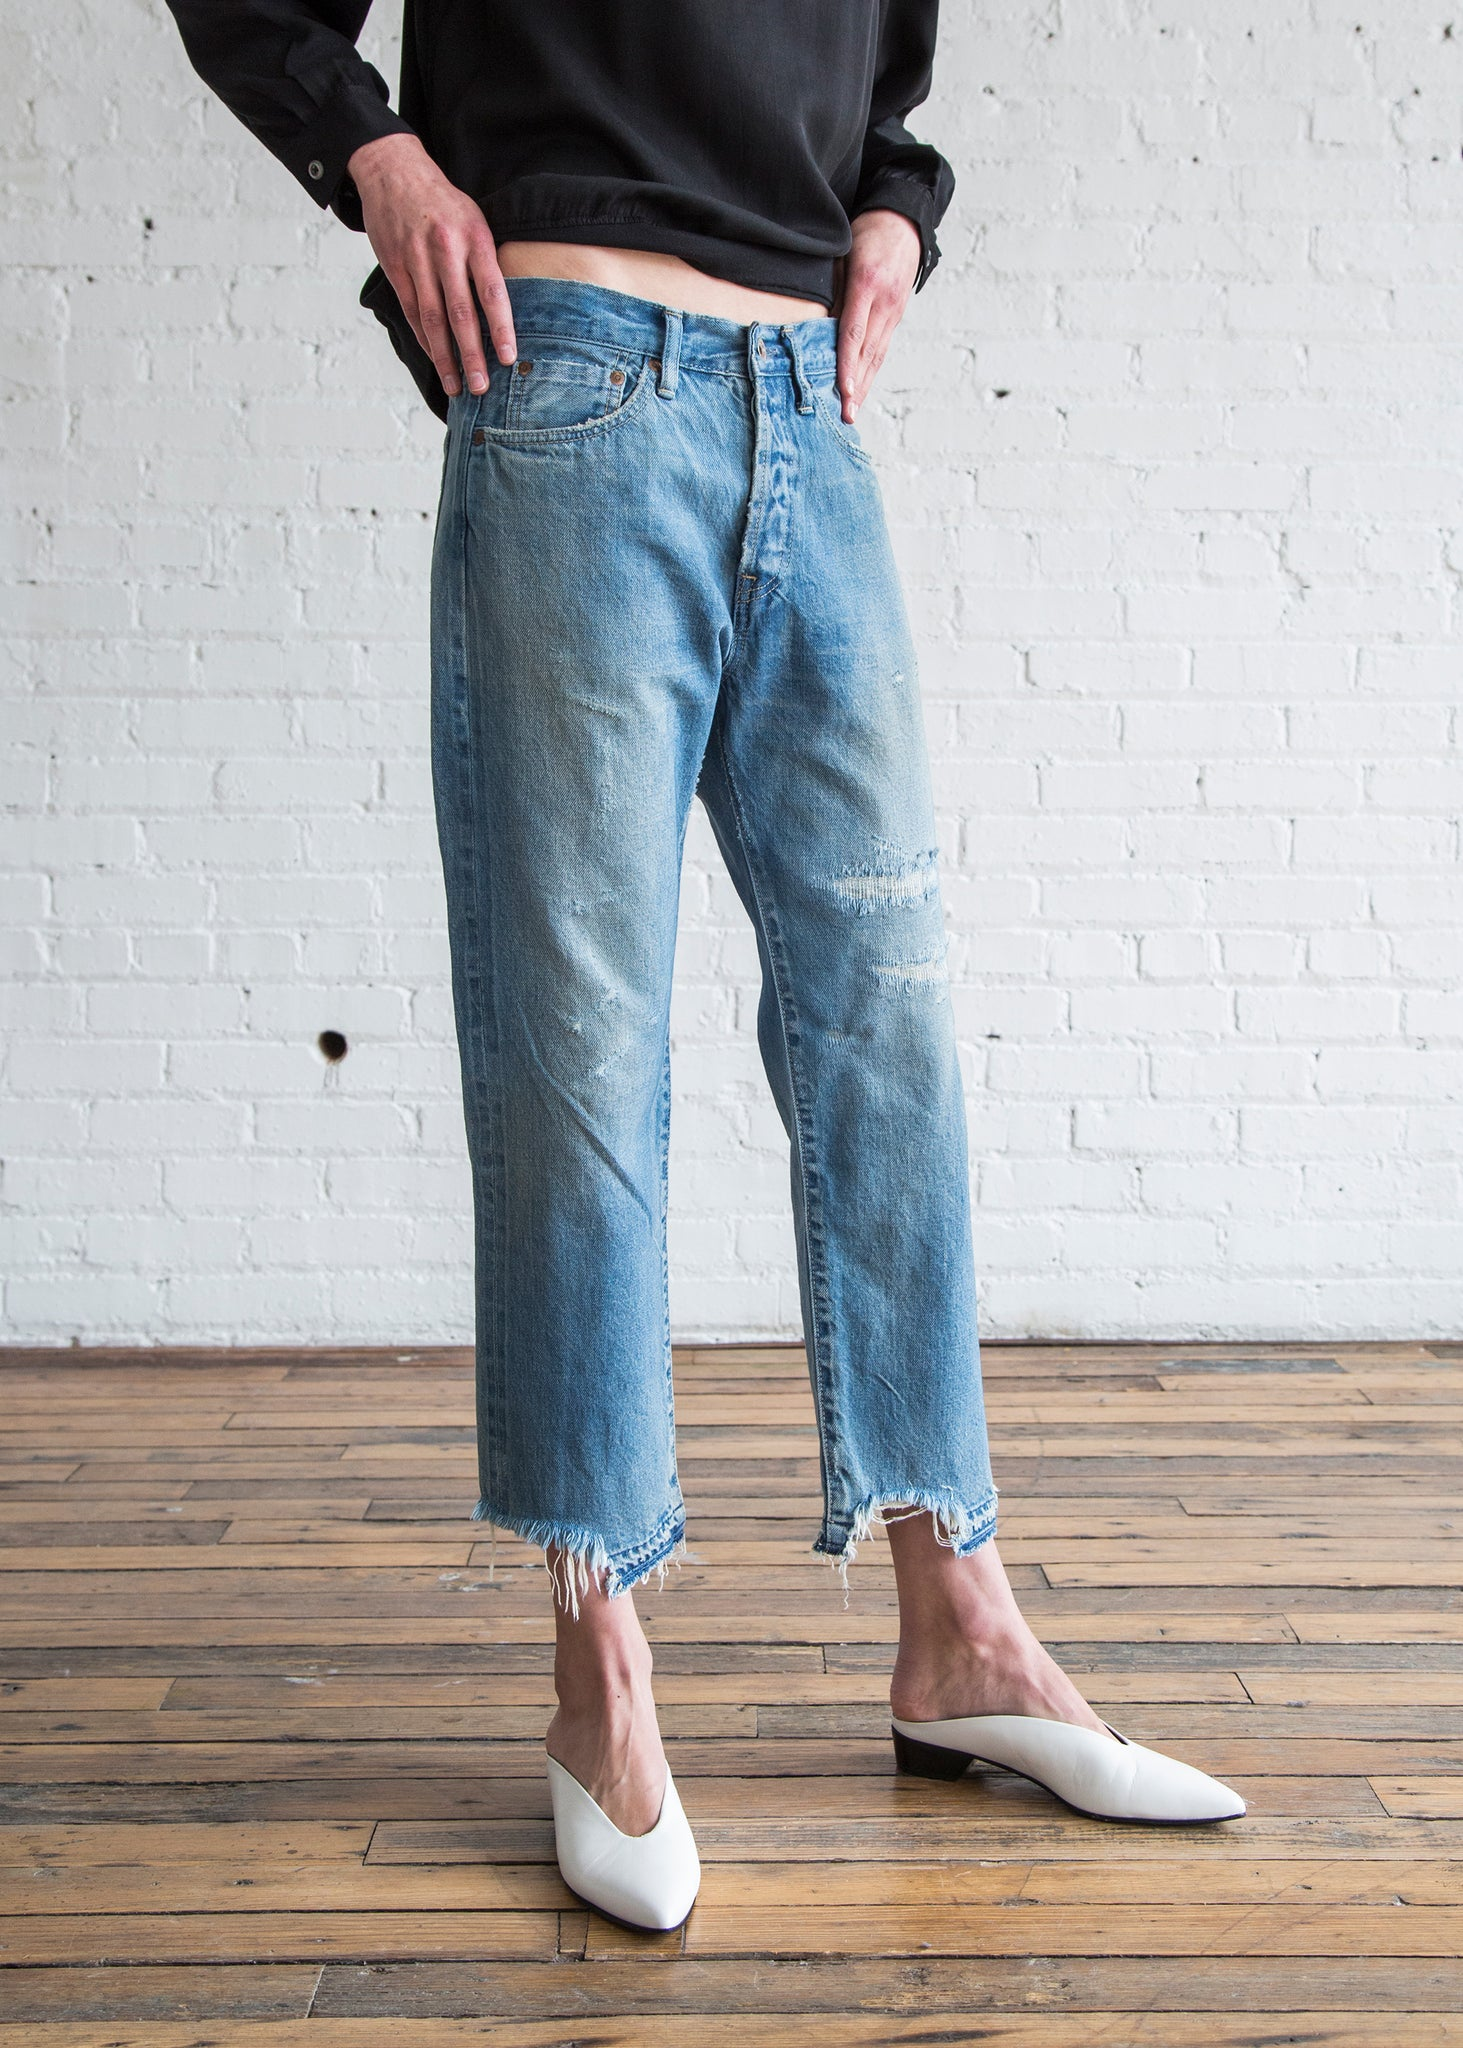 Chimala Selvedge Denim Used Ankle Cut Vintage Light